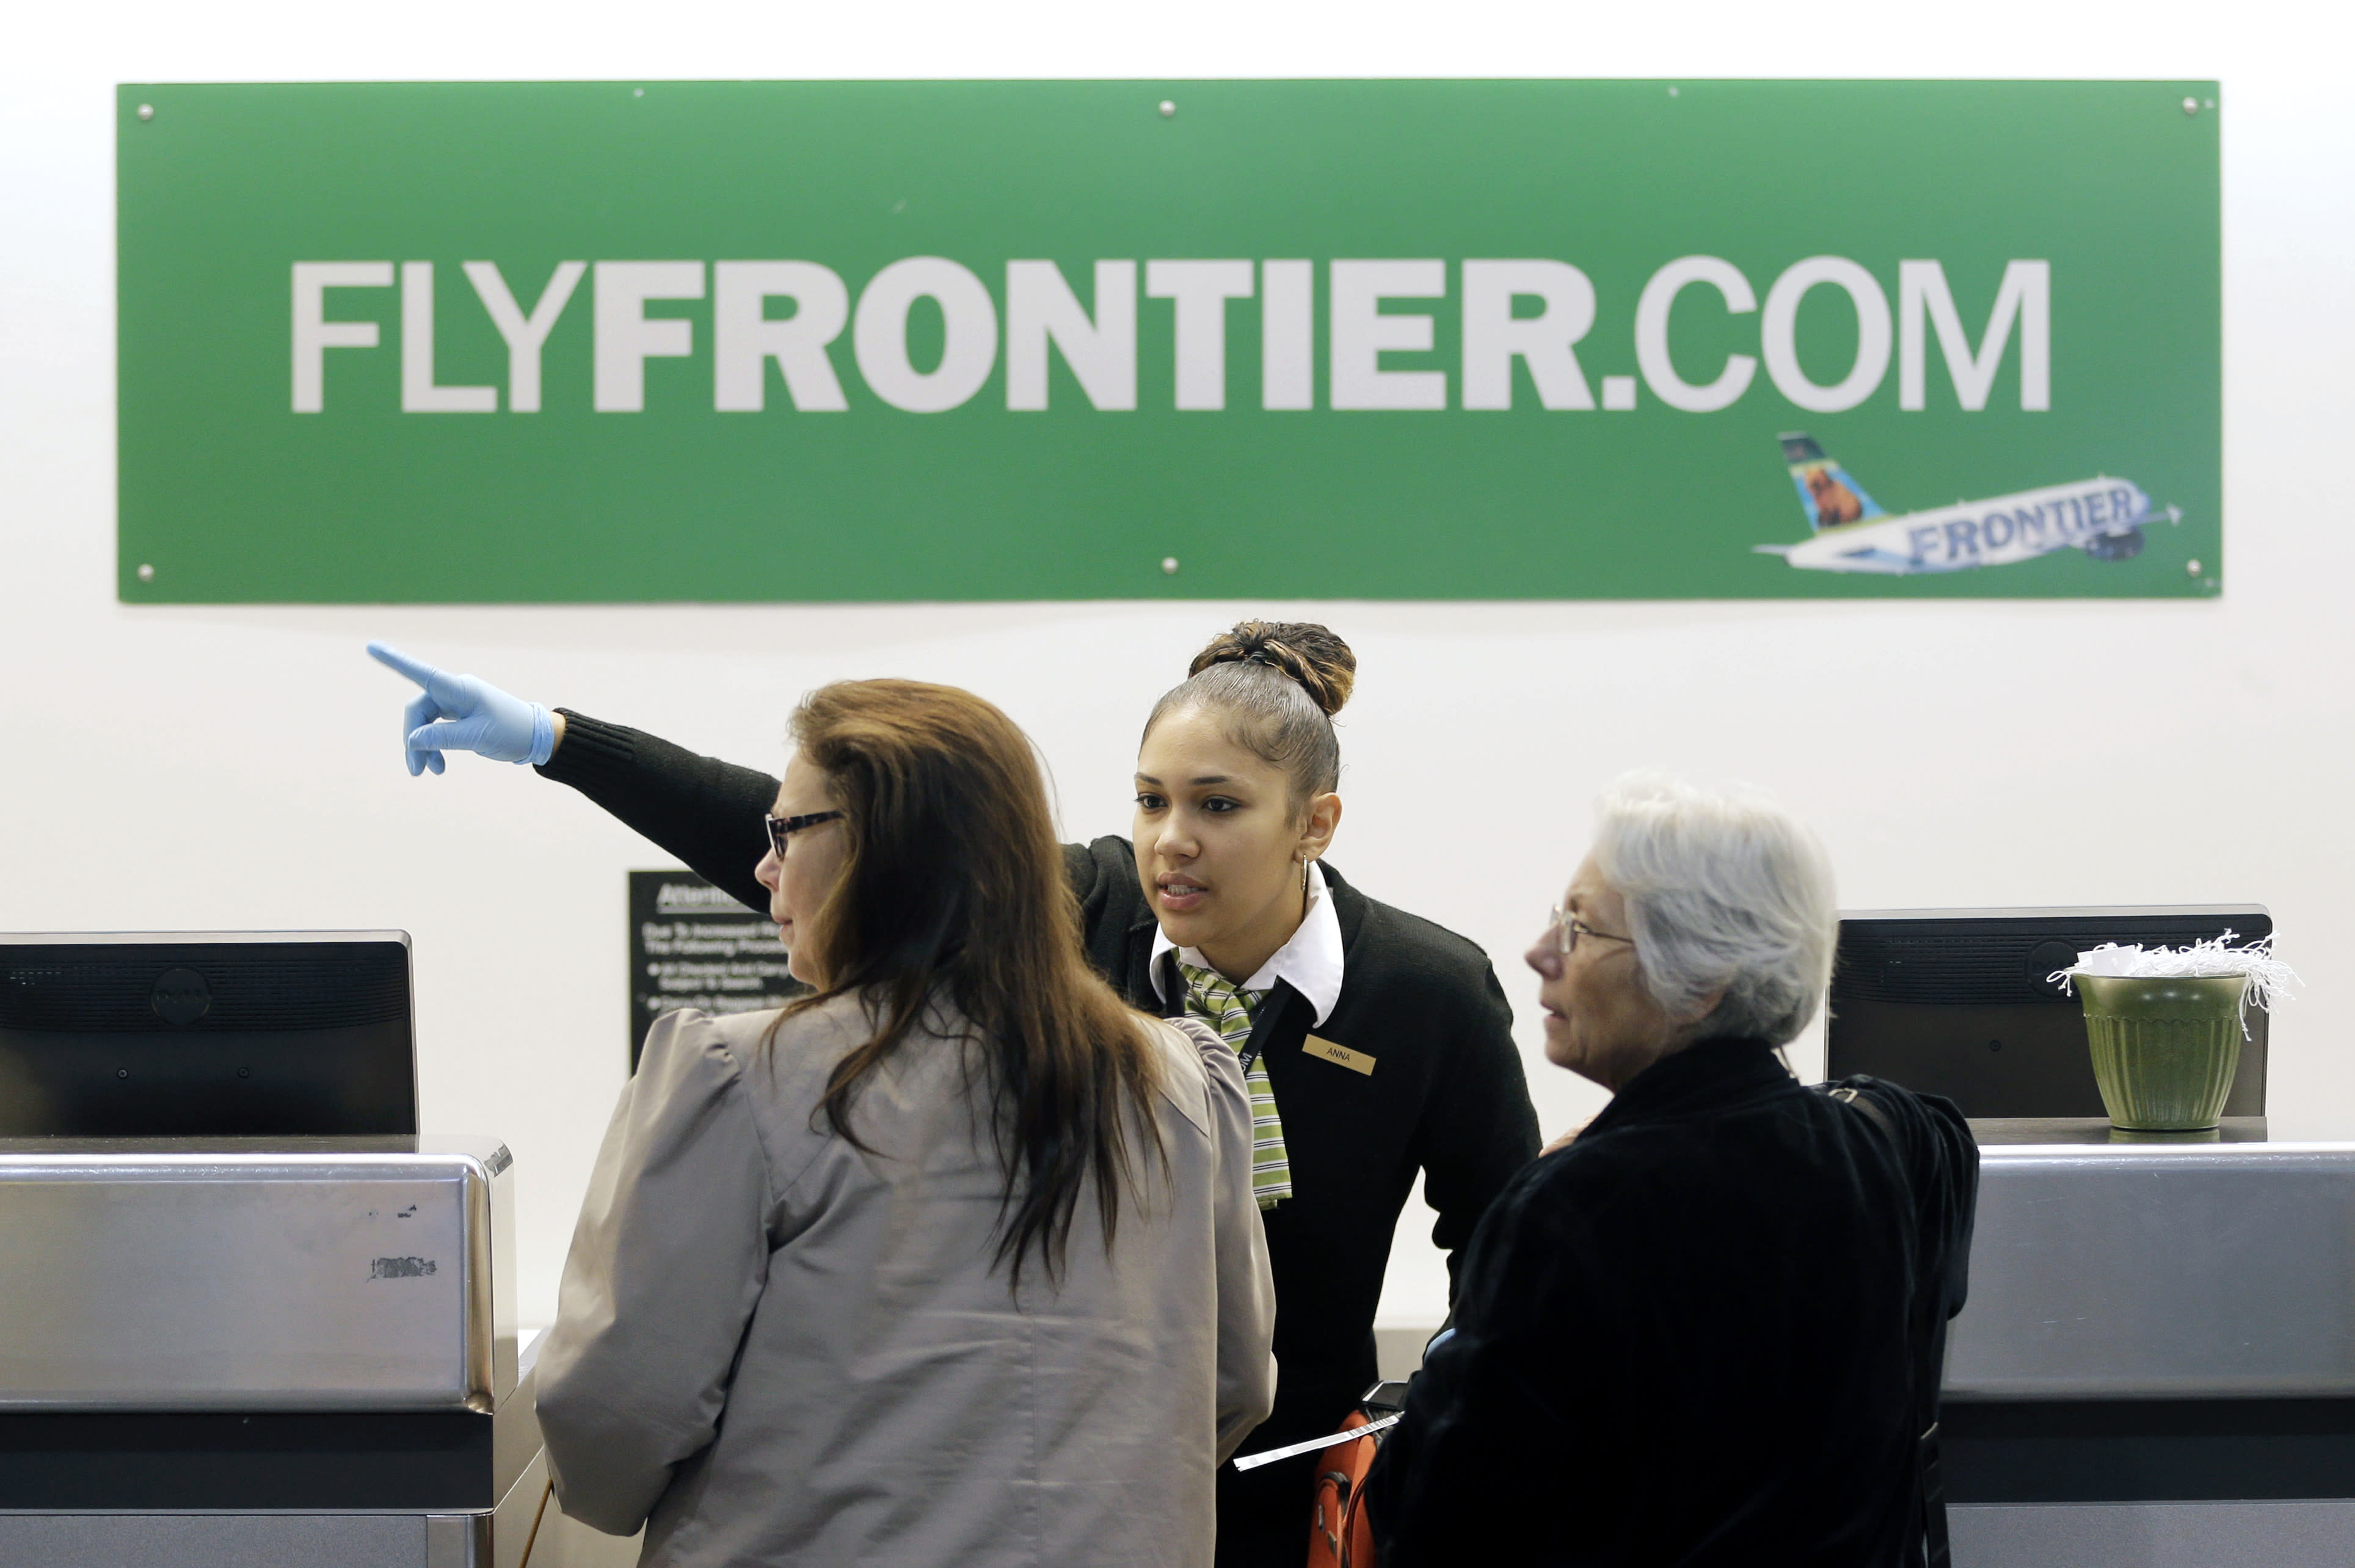 Some travelers love to hate the new discount airlines